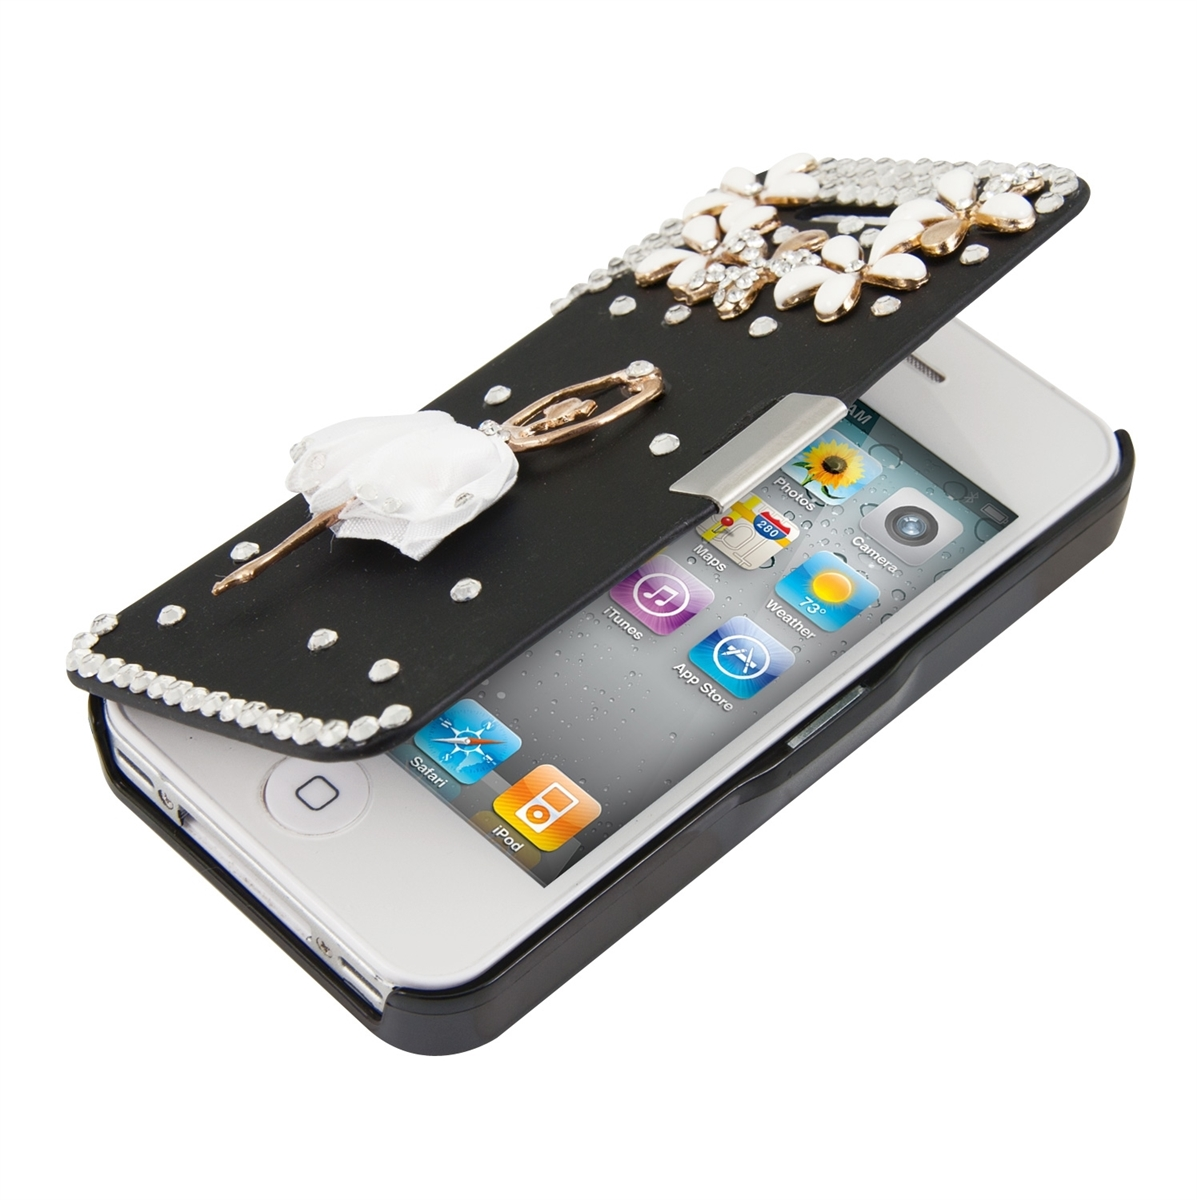 strass flip cover iphone 4 4s ballerina in neuwilen tg kaufen bei. Black Bedroom Furniture Sets. Home Design Ideas